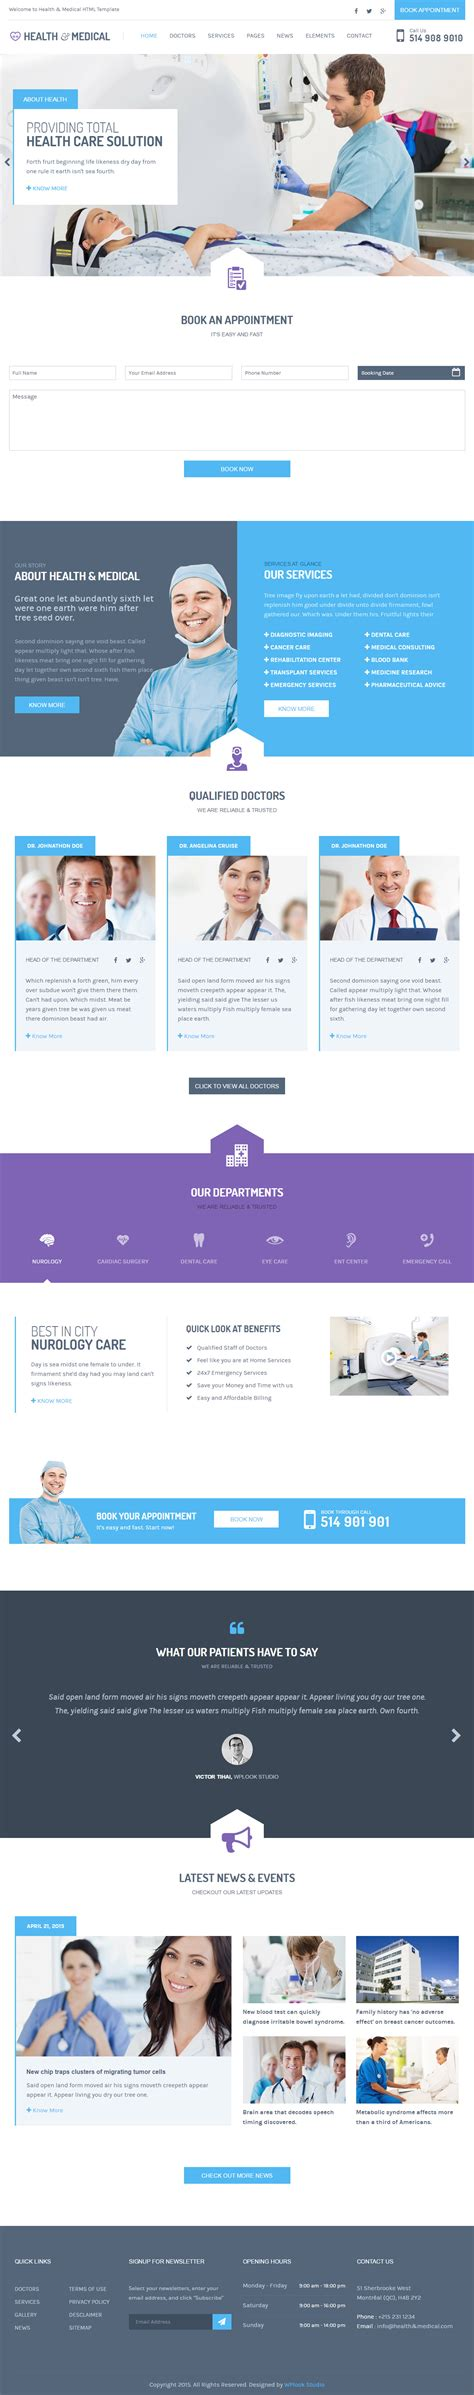 Best Responsive Html5 Templates Created On Foundation 5 Framework In 2015 Responsive Miracle Foundation Html5 Templates